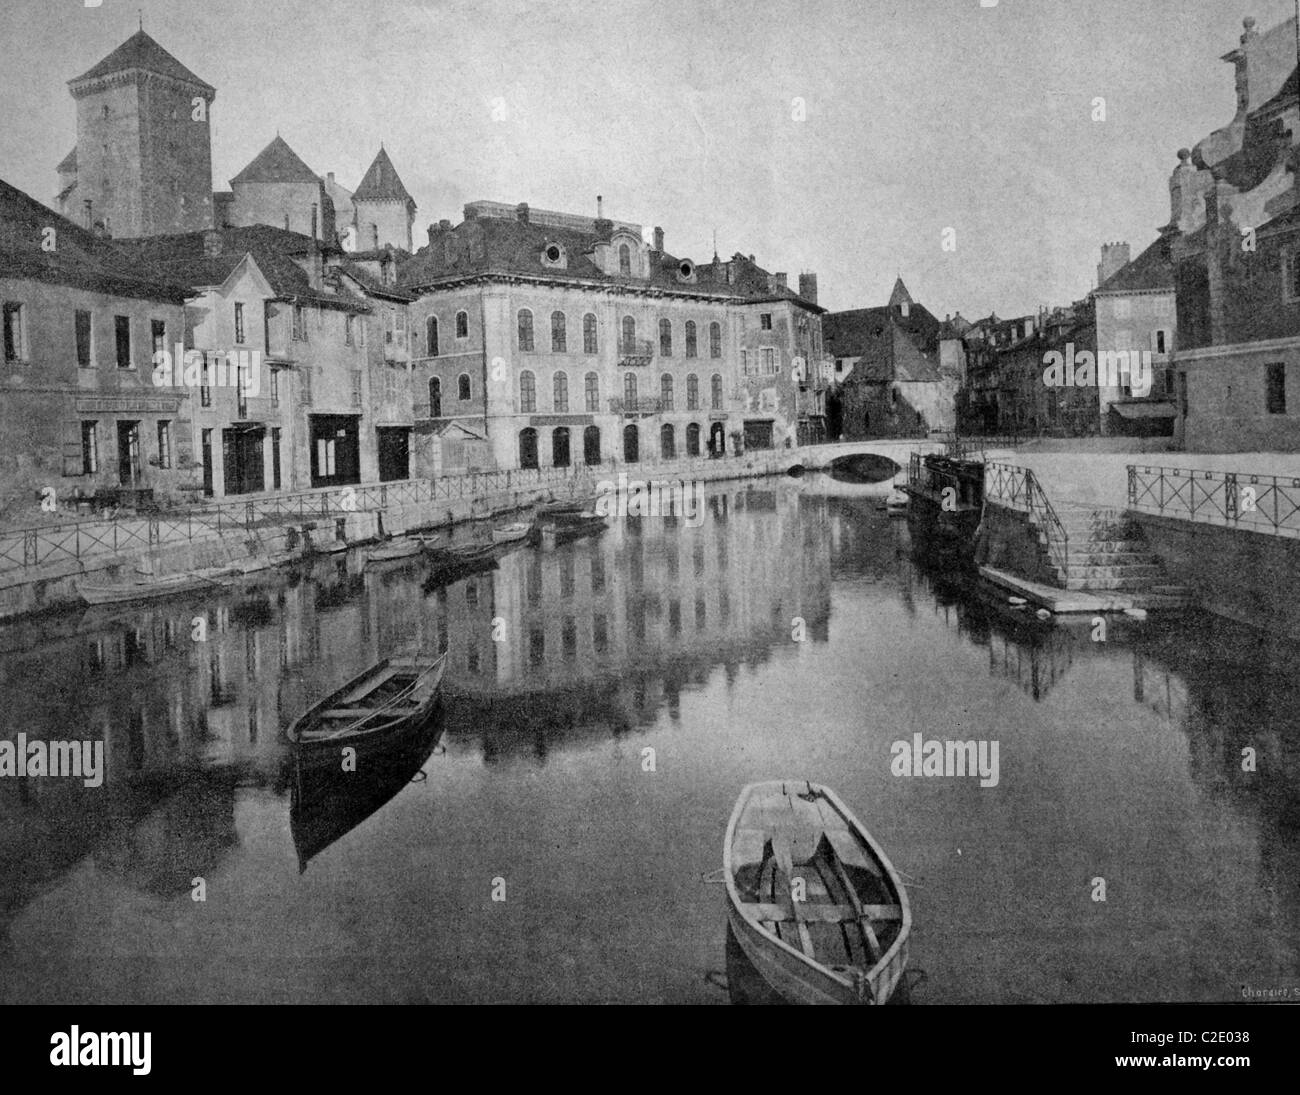 One of the first autotypes of Annecy, France, historical photograph, 1884 - Stock Image